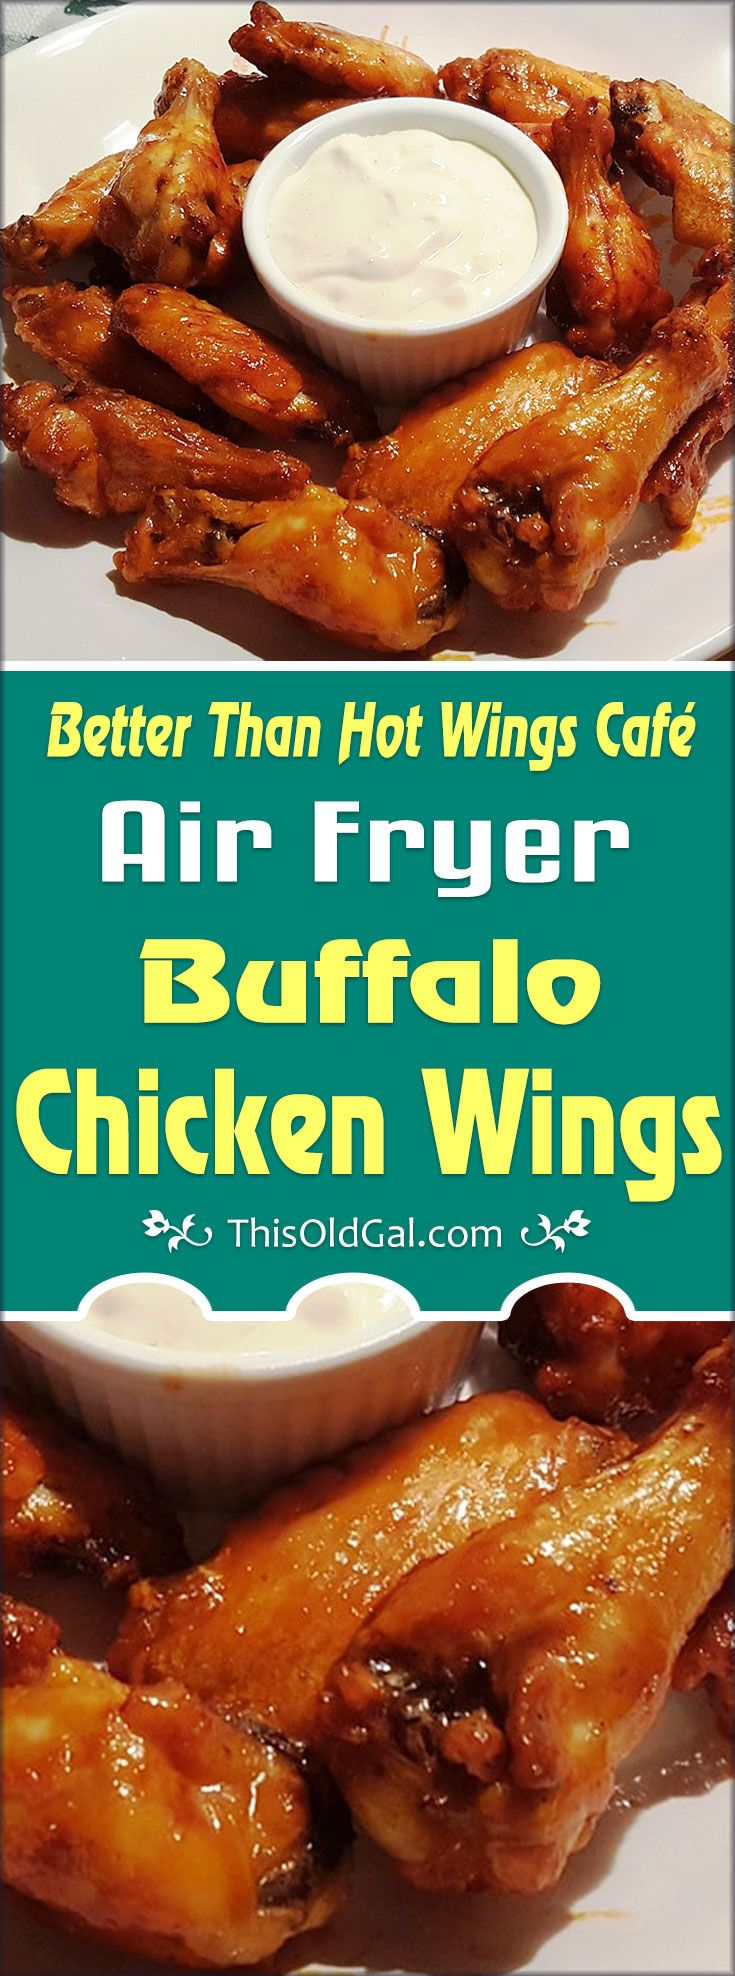 Better Than Hot Wings Café Air Fryer Buffalo Chicken Wings are better for your wallet and easily prepared in the air fryer in about 30 minutes. #airfryerrecipes